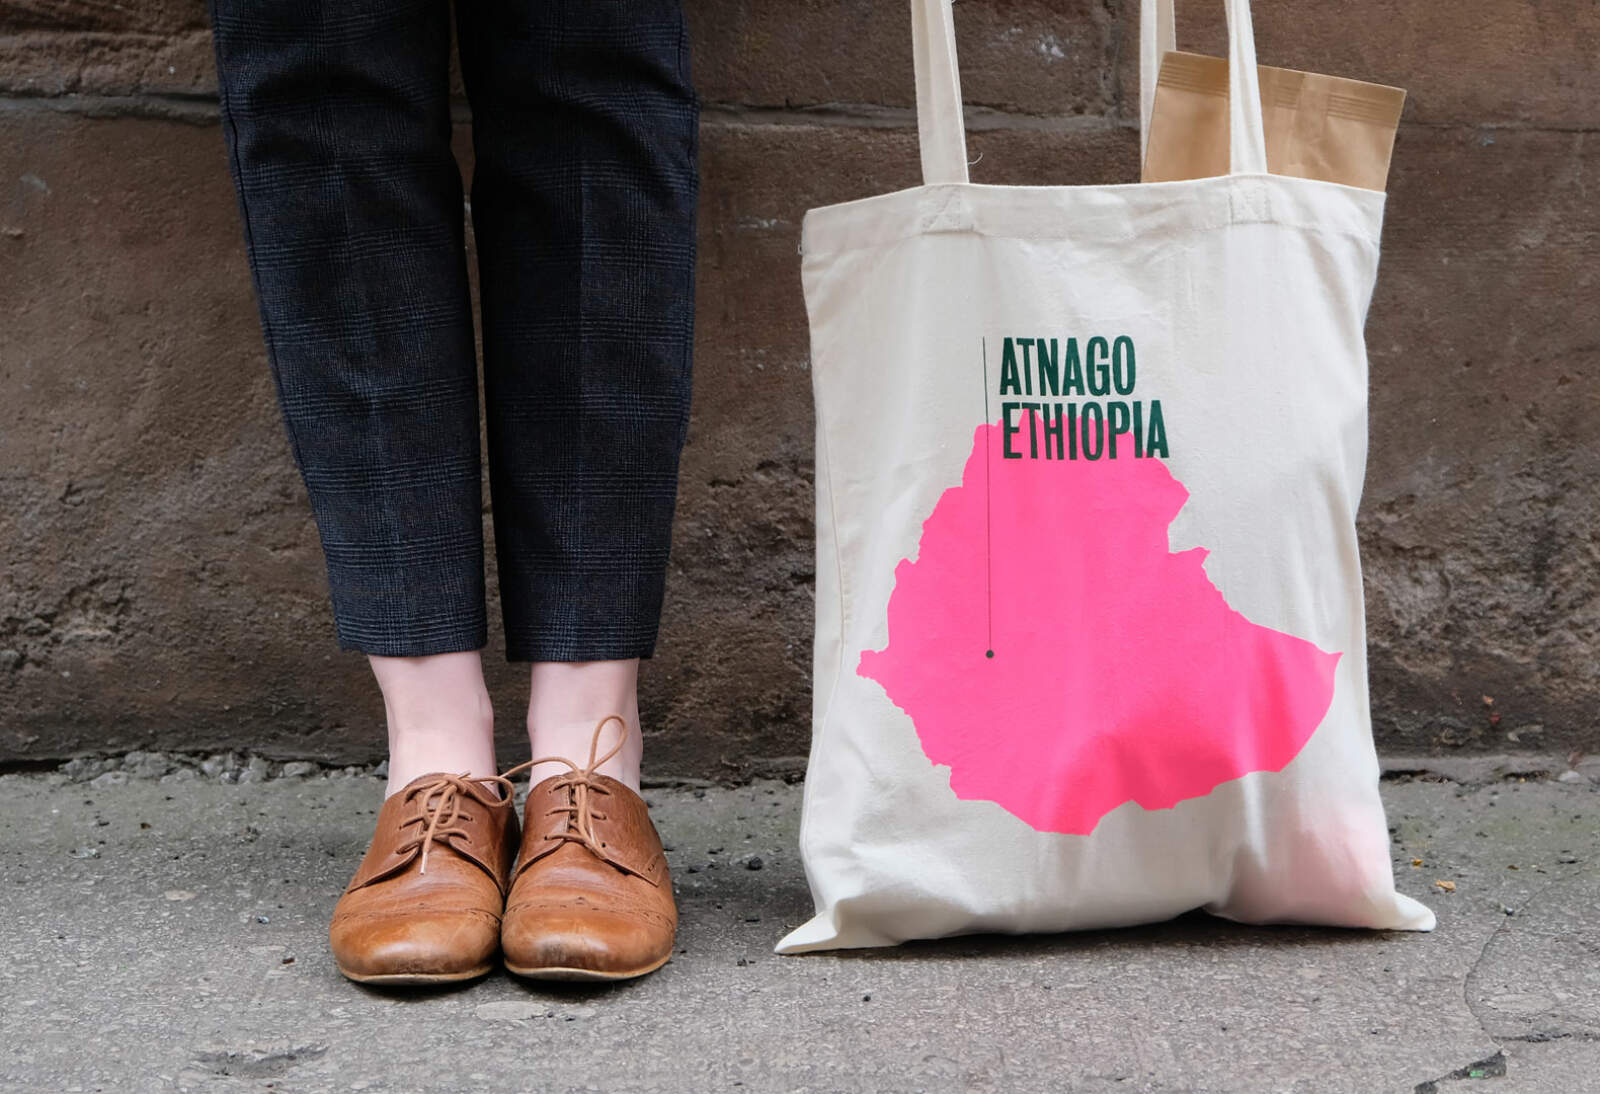 Passion Fruit branding applied to a tote bag.